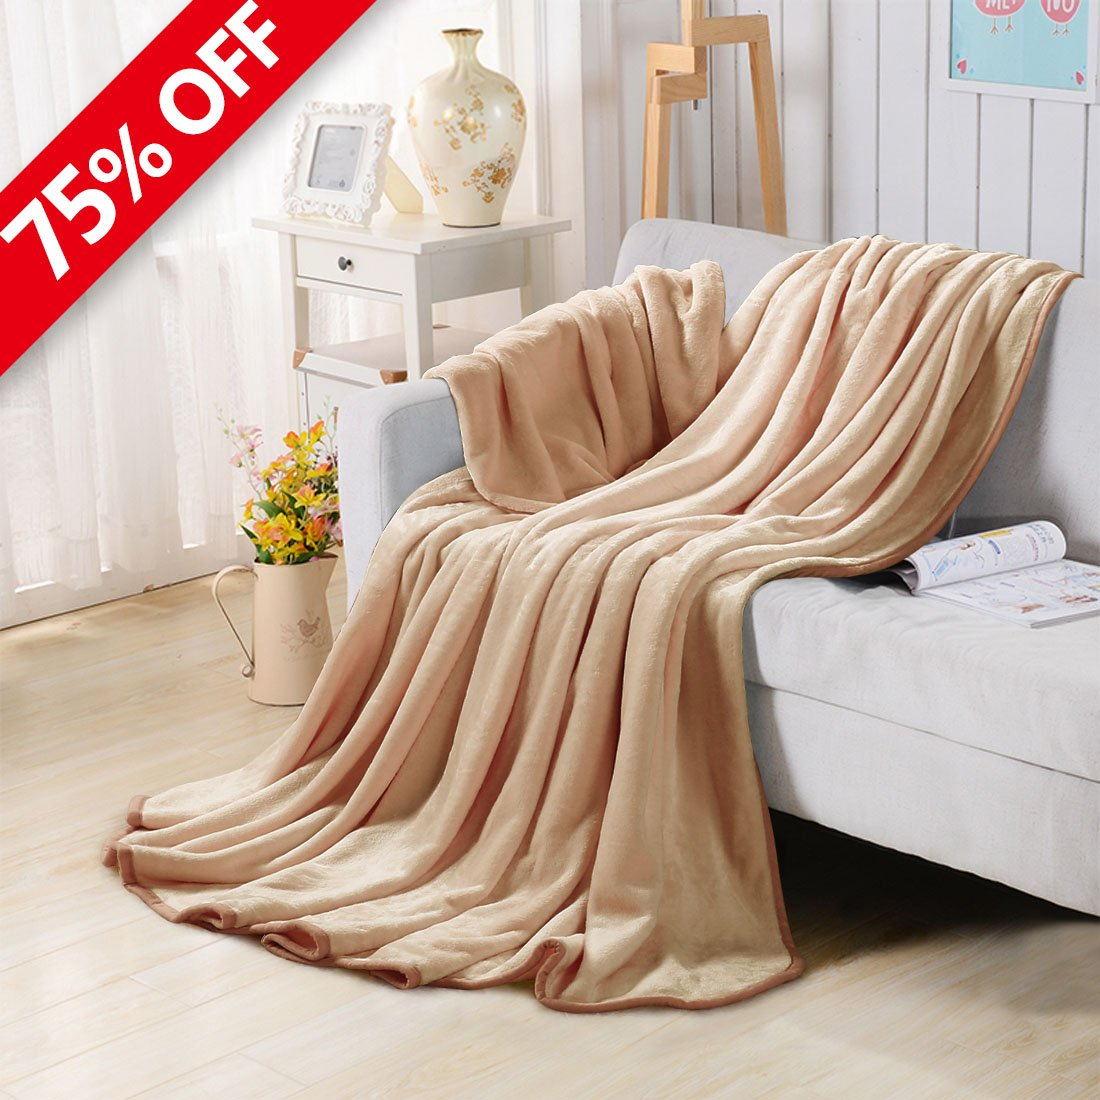 Fleece Blankets for The Bed Extra Soft Brush Fabric Super Warm Sofa Blanket (Throw-50X61inch,Khaki)